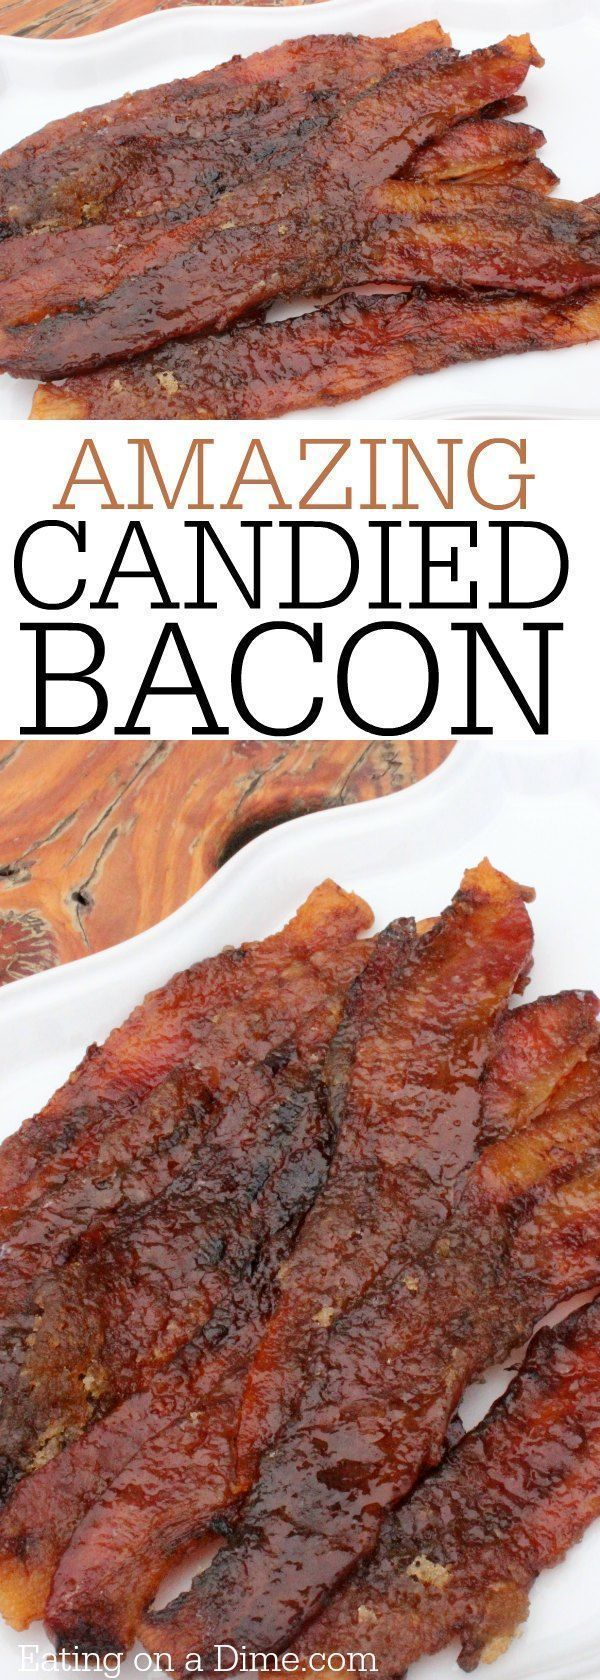 You are going to love this candied bacon recipe. This easy caramelized bacon recipe is a crowd pleaser. Maple bacon is the best recipe.